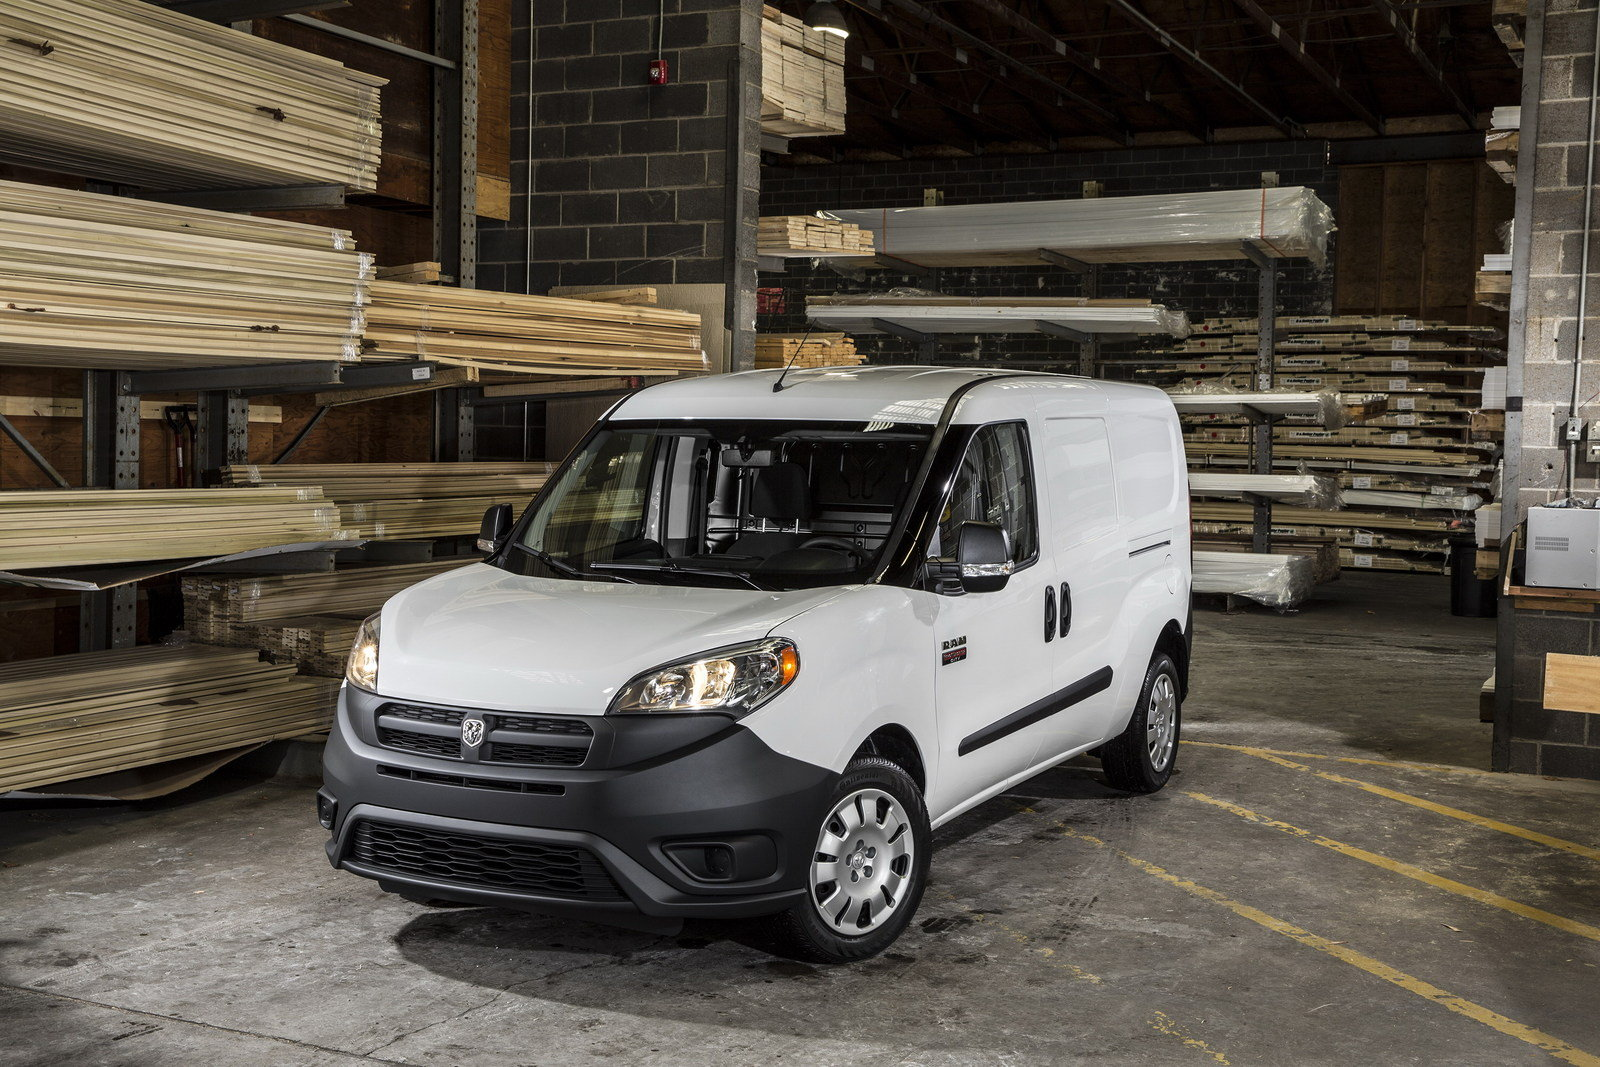 2015 ram promaster city picture 557885 car review top speed. Black Bedroom Furniture Sets. Home Design Ideas